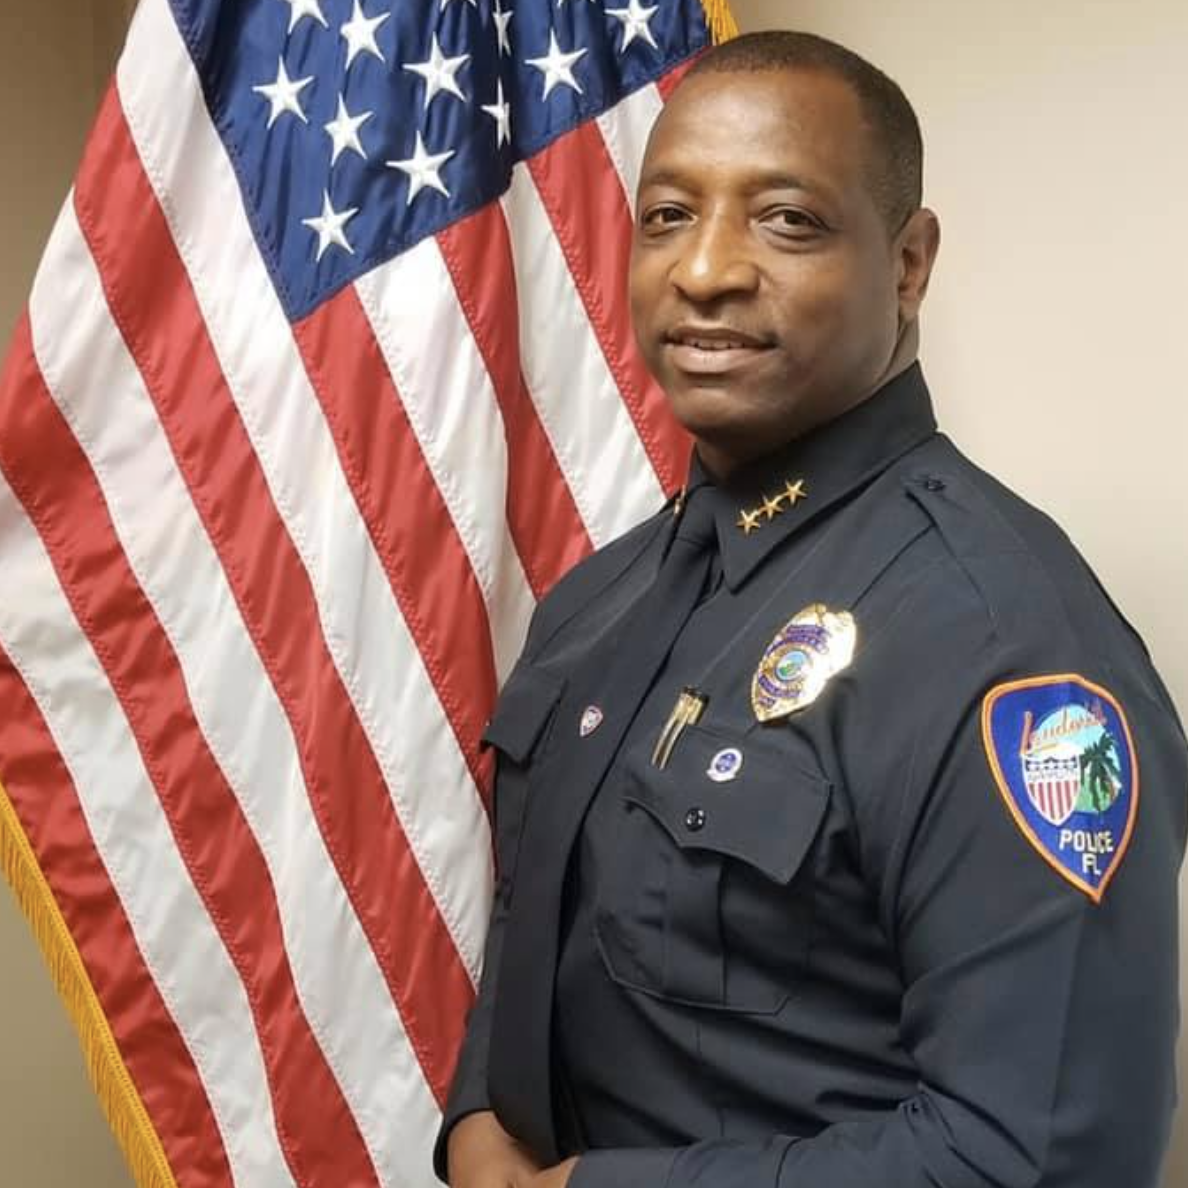 Chief Deputy Belcher in uniform with American flag